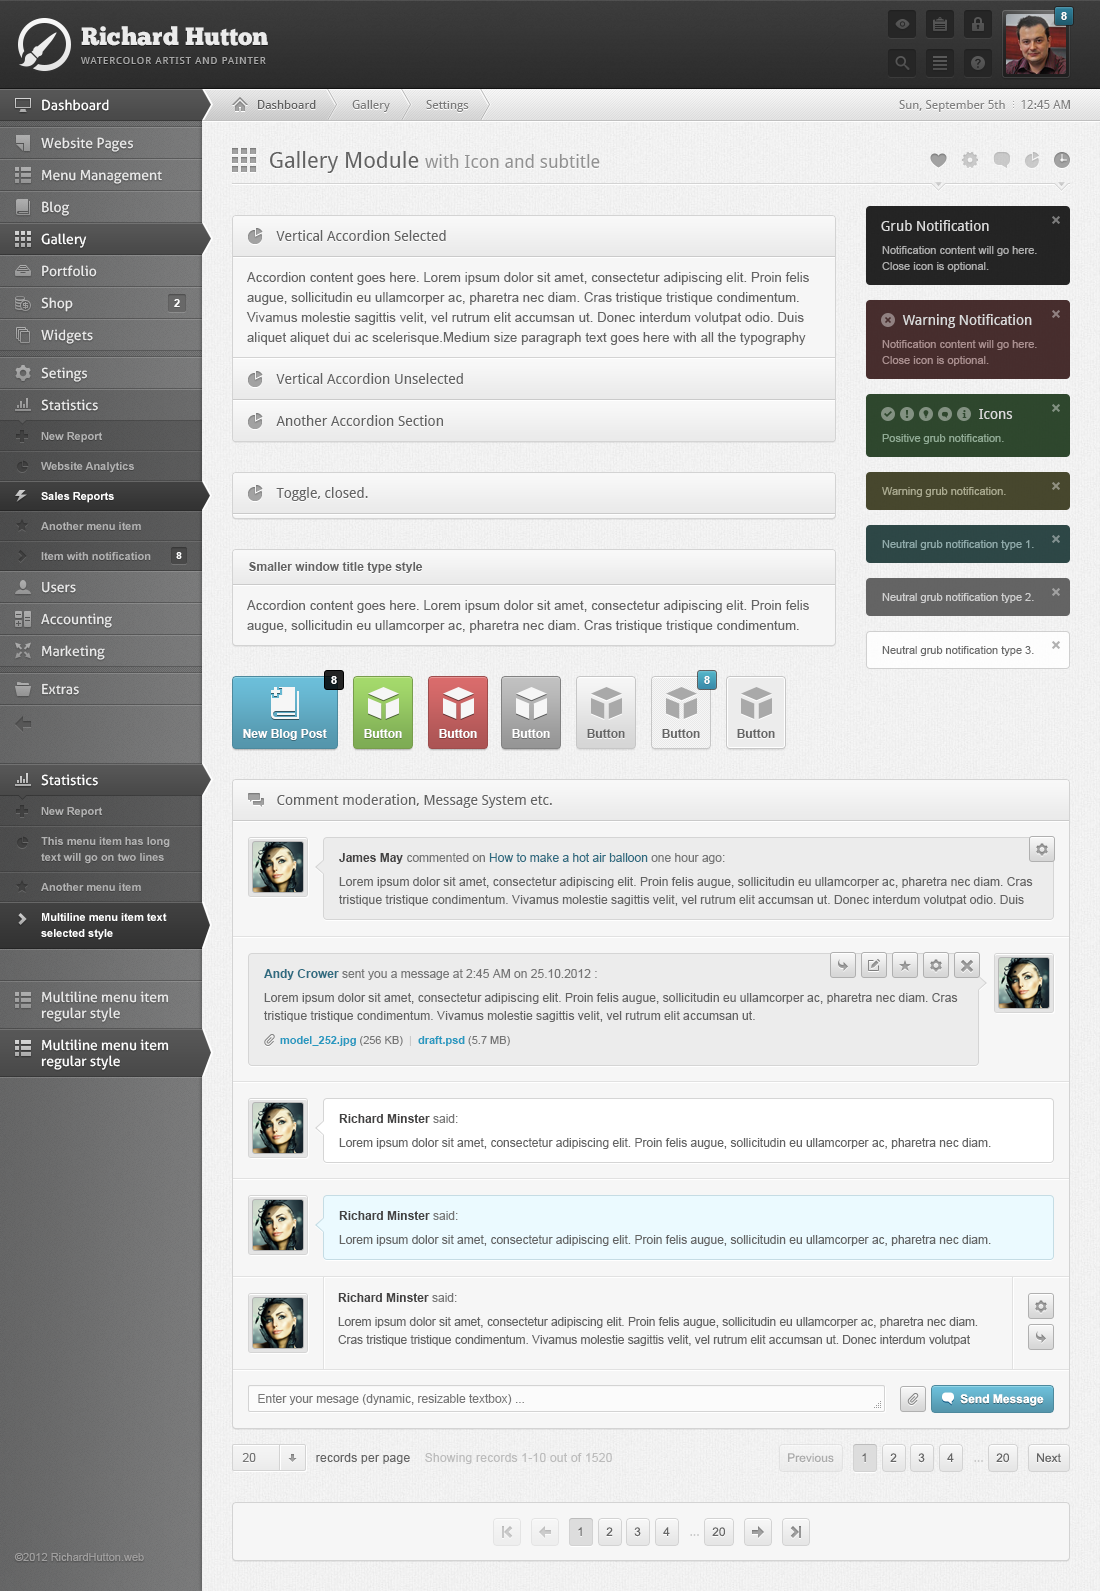 UI ux User Experience Design user interface admin panel cms Content Management System